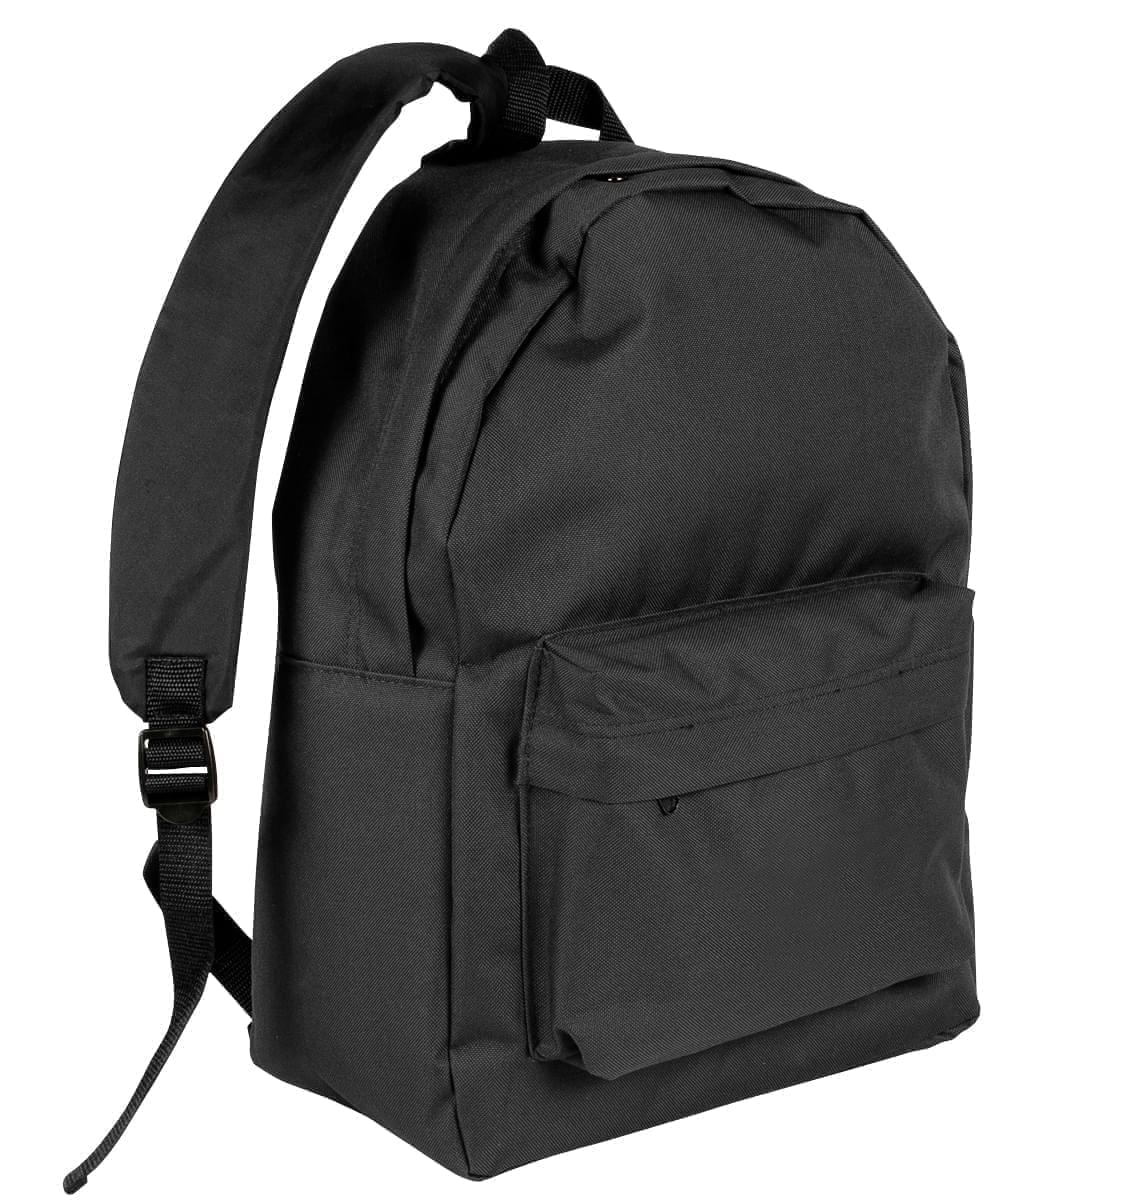 USA Made Nylon Poly Backpack Knapsacks, Black-Black, 8960-AOR